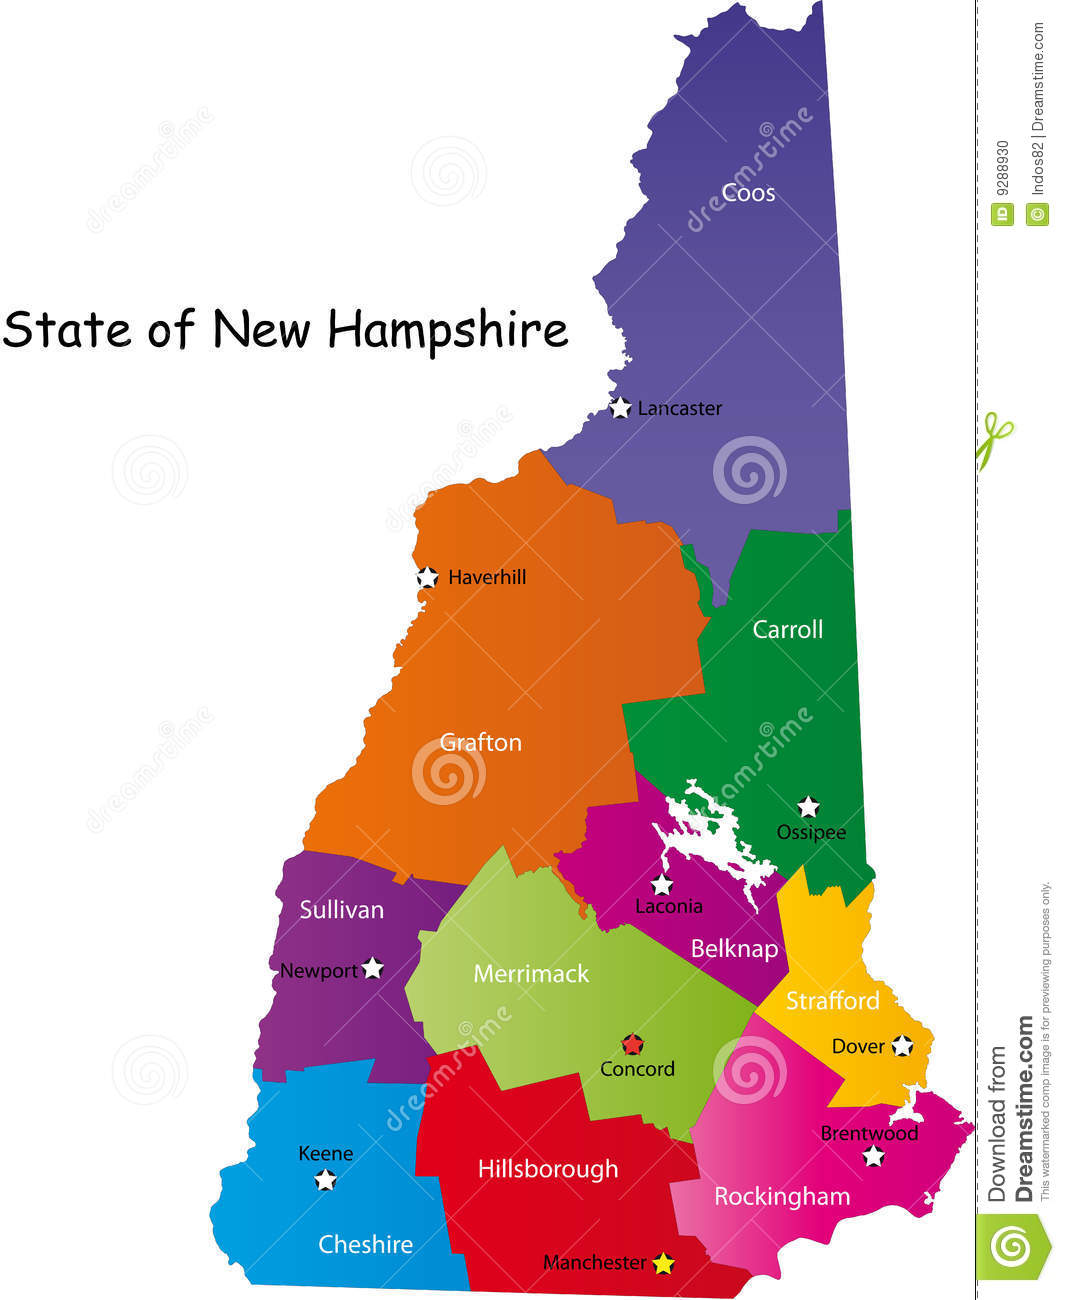 nh county map with Stock Photo Map New H Shire State Image9288930 on RockinghamCounty additionally Display also Nh Facts moreover 7375 Providence Resources together with Vt.